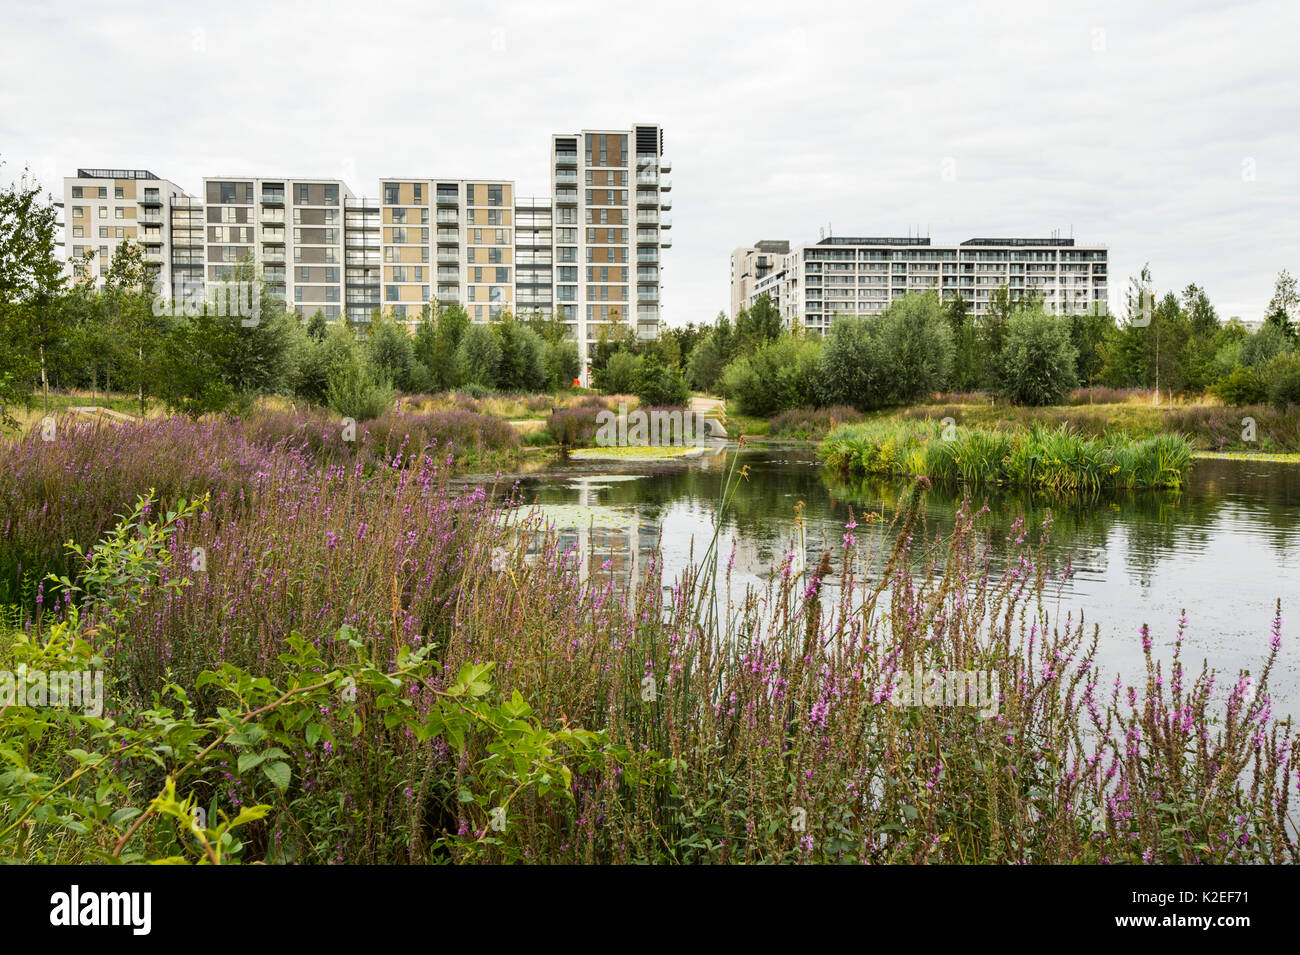 Environmental enrichment designed into housing estate, with wildlife pond and green space, East Village housing at site of Olympic Village, Stratford, London, UK 2014 - Stock Image